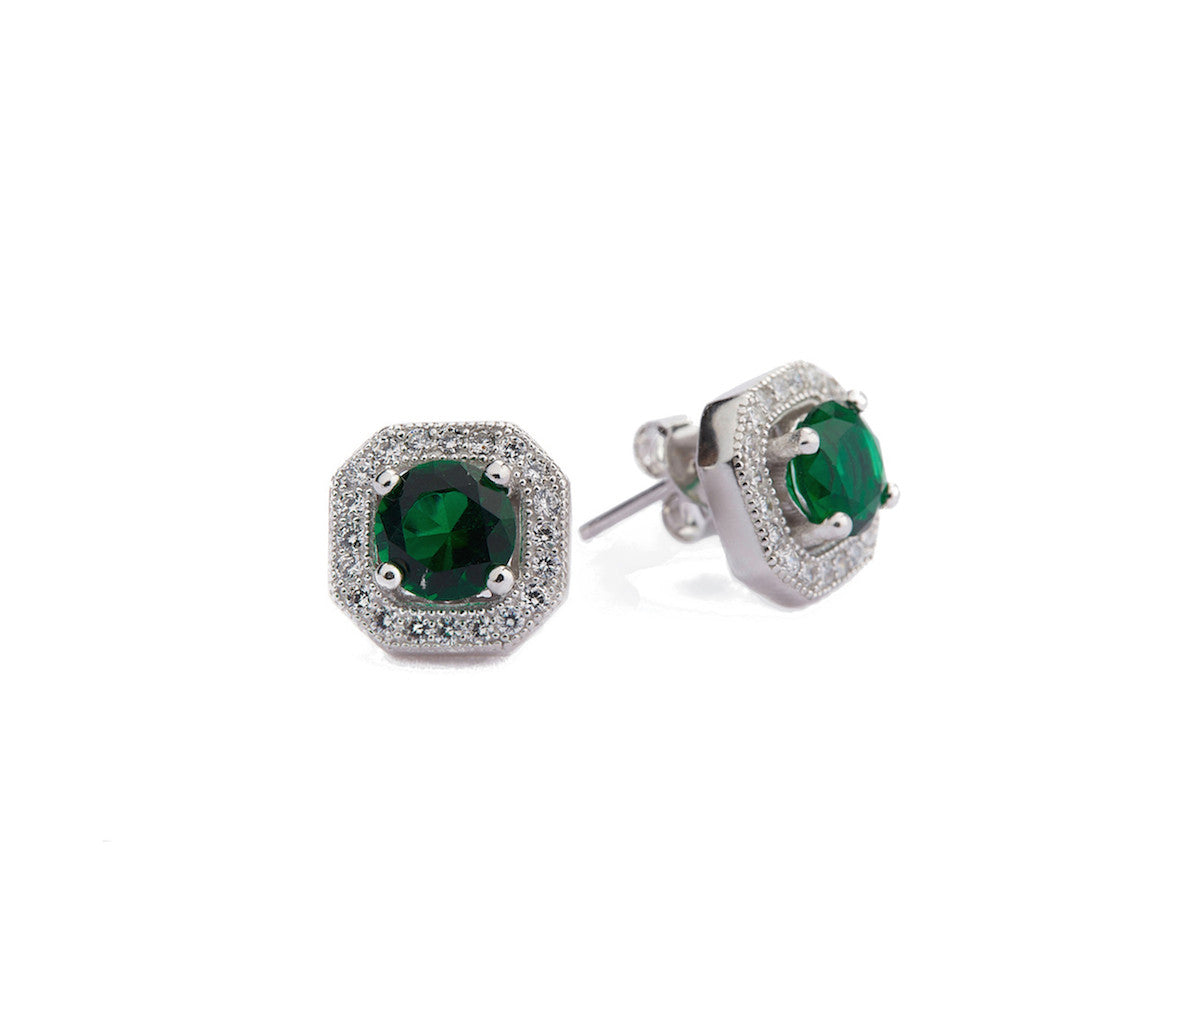 Emerald & White CZ Silver Octagonal Stud Earrings